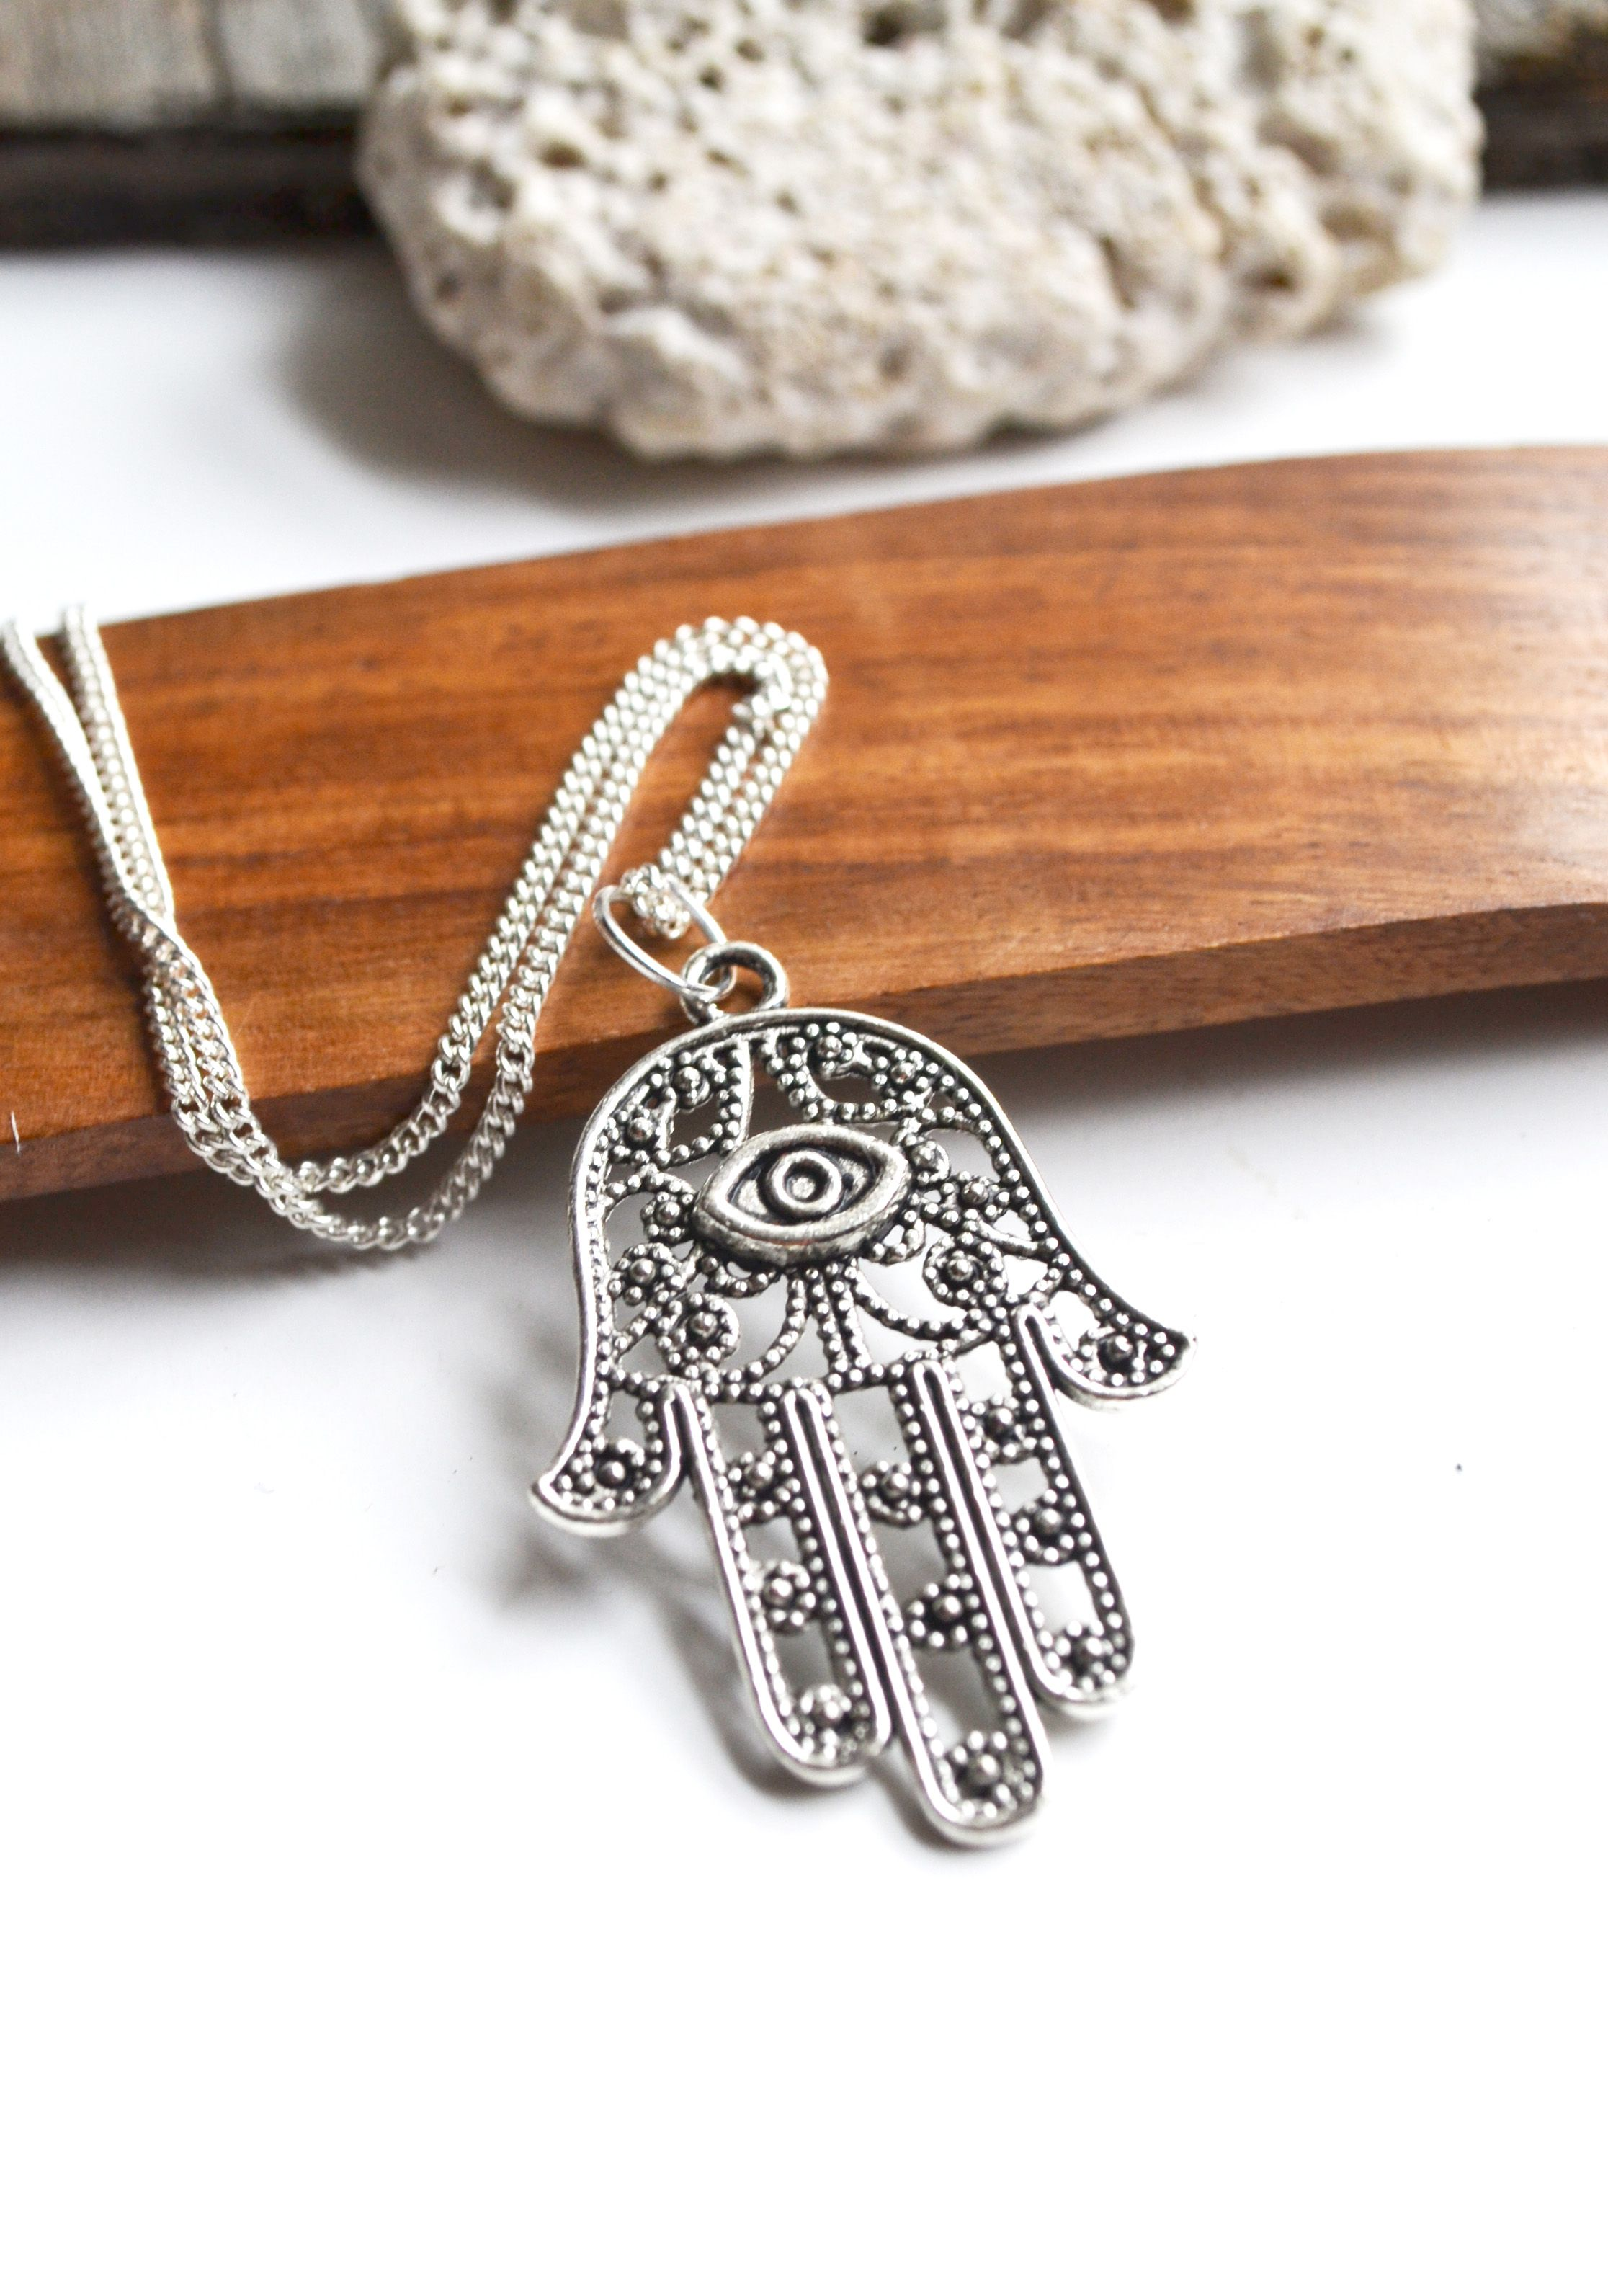 Hamsa hand necklace evil eye protection necklace hamsa jewelry this protection necklace is silver plated and please view all photos for details hamsa or hand of fatima meaning the eye in aloadofball Gallery